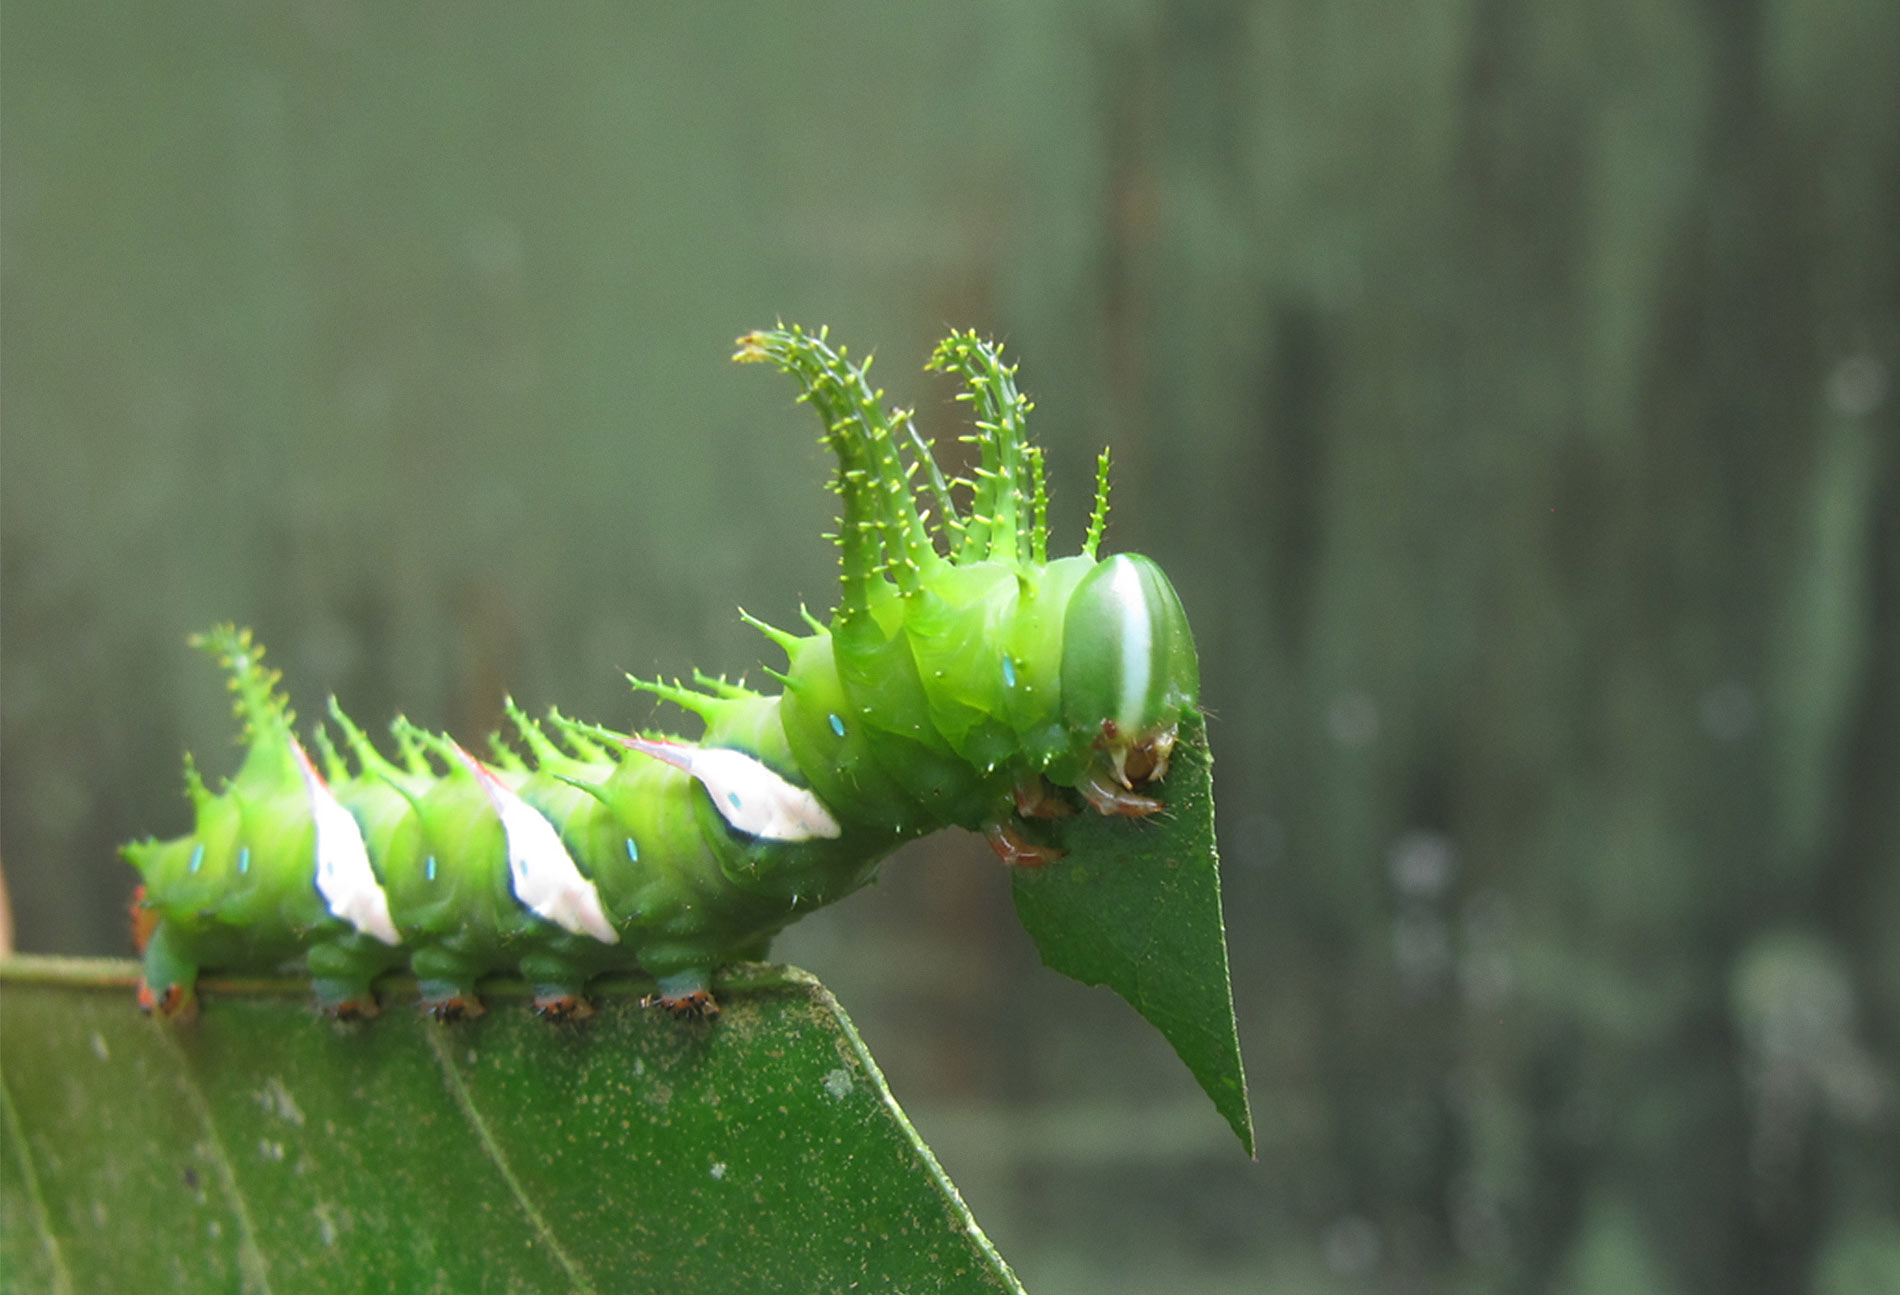 A caterpillar on a leaf.